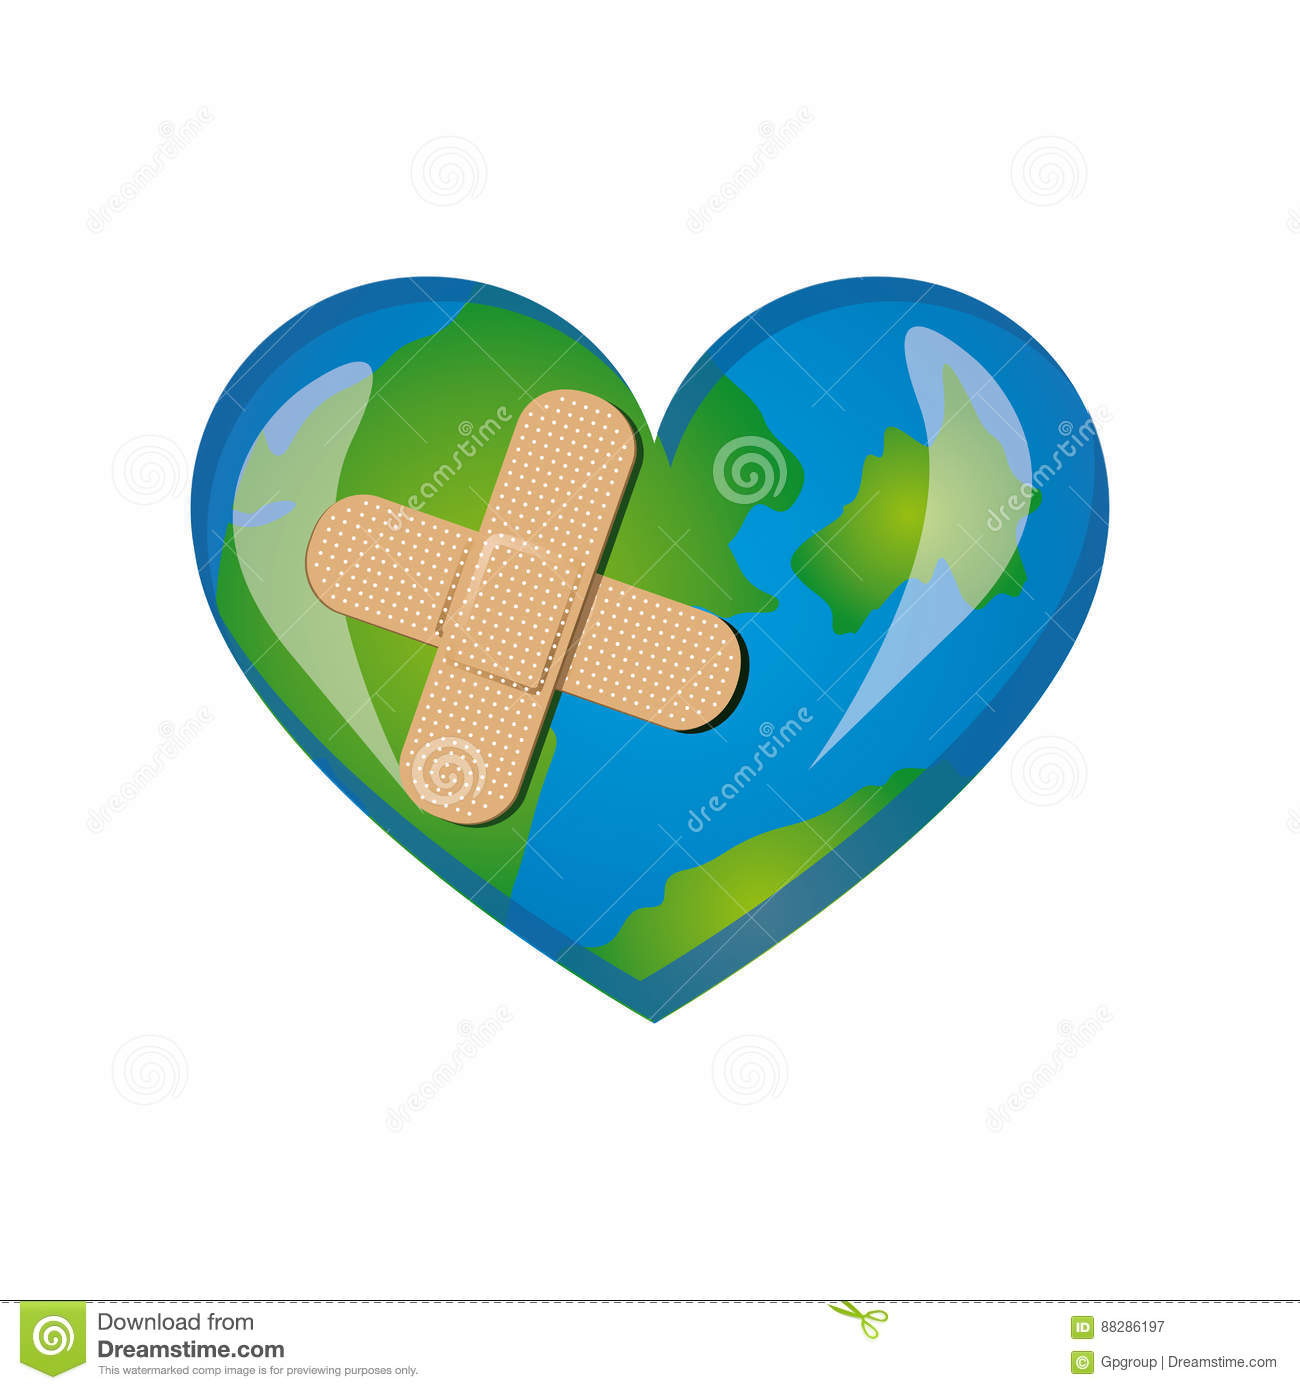 earth planet heart with band aid icon stock illustration